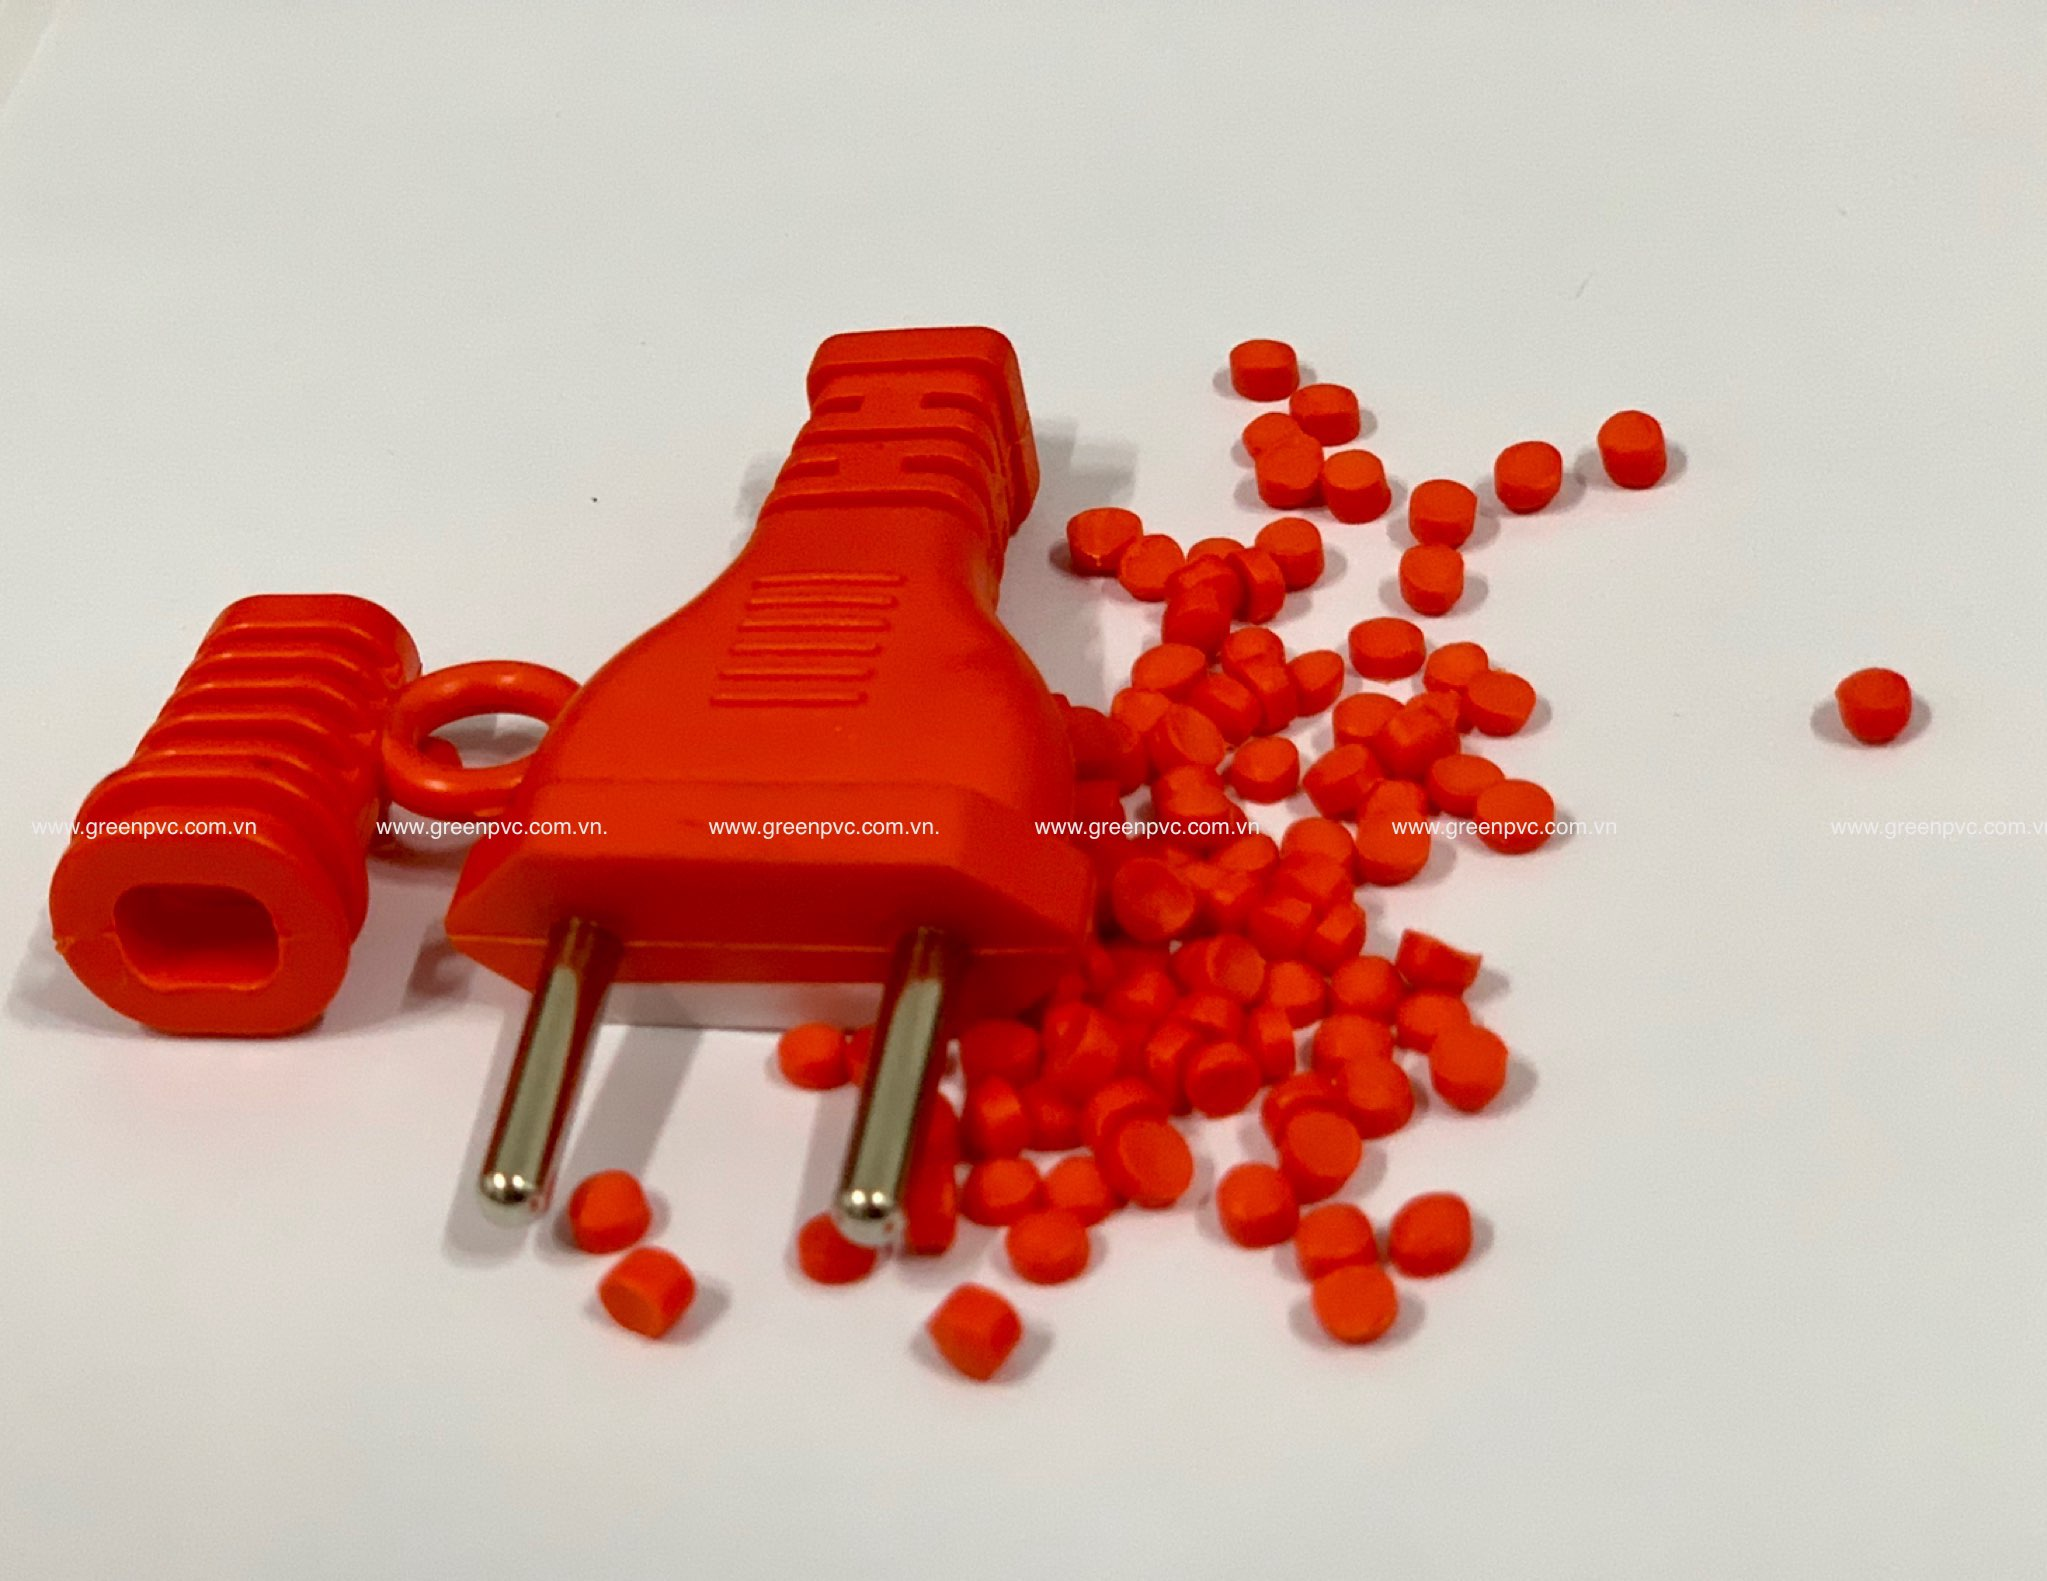 Flexible PVC Compound for Electrical Plastic Plugs